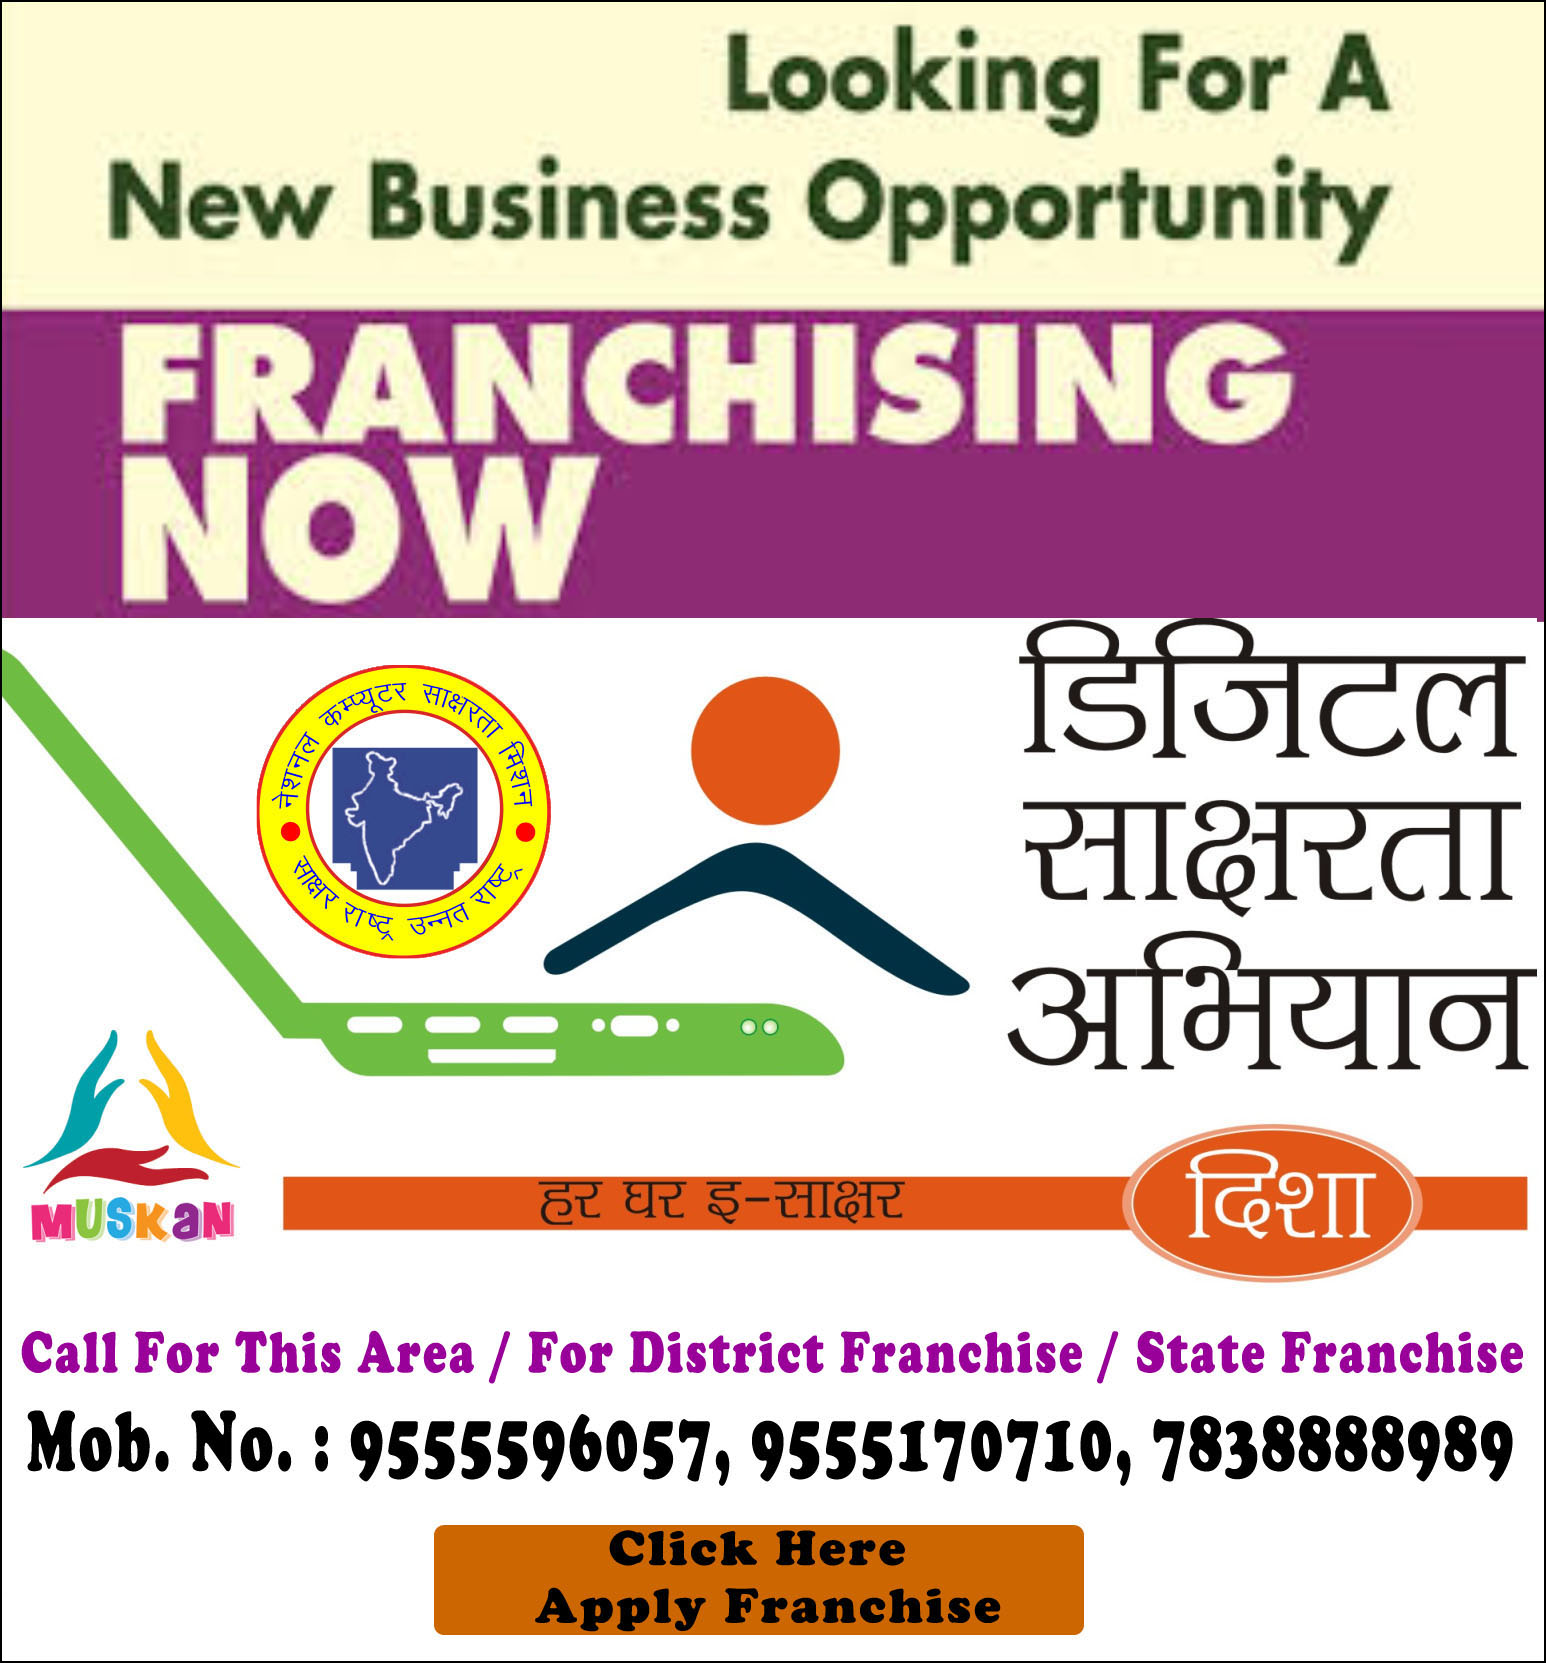 NDLM Training Franchise in  Jaipur, RAJASTHAN,India